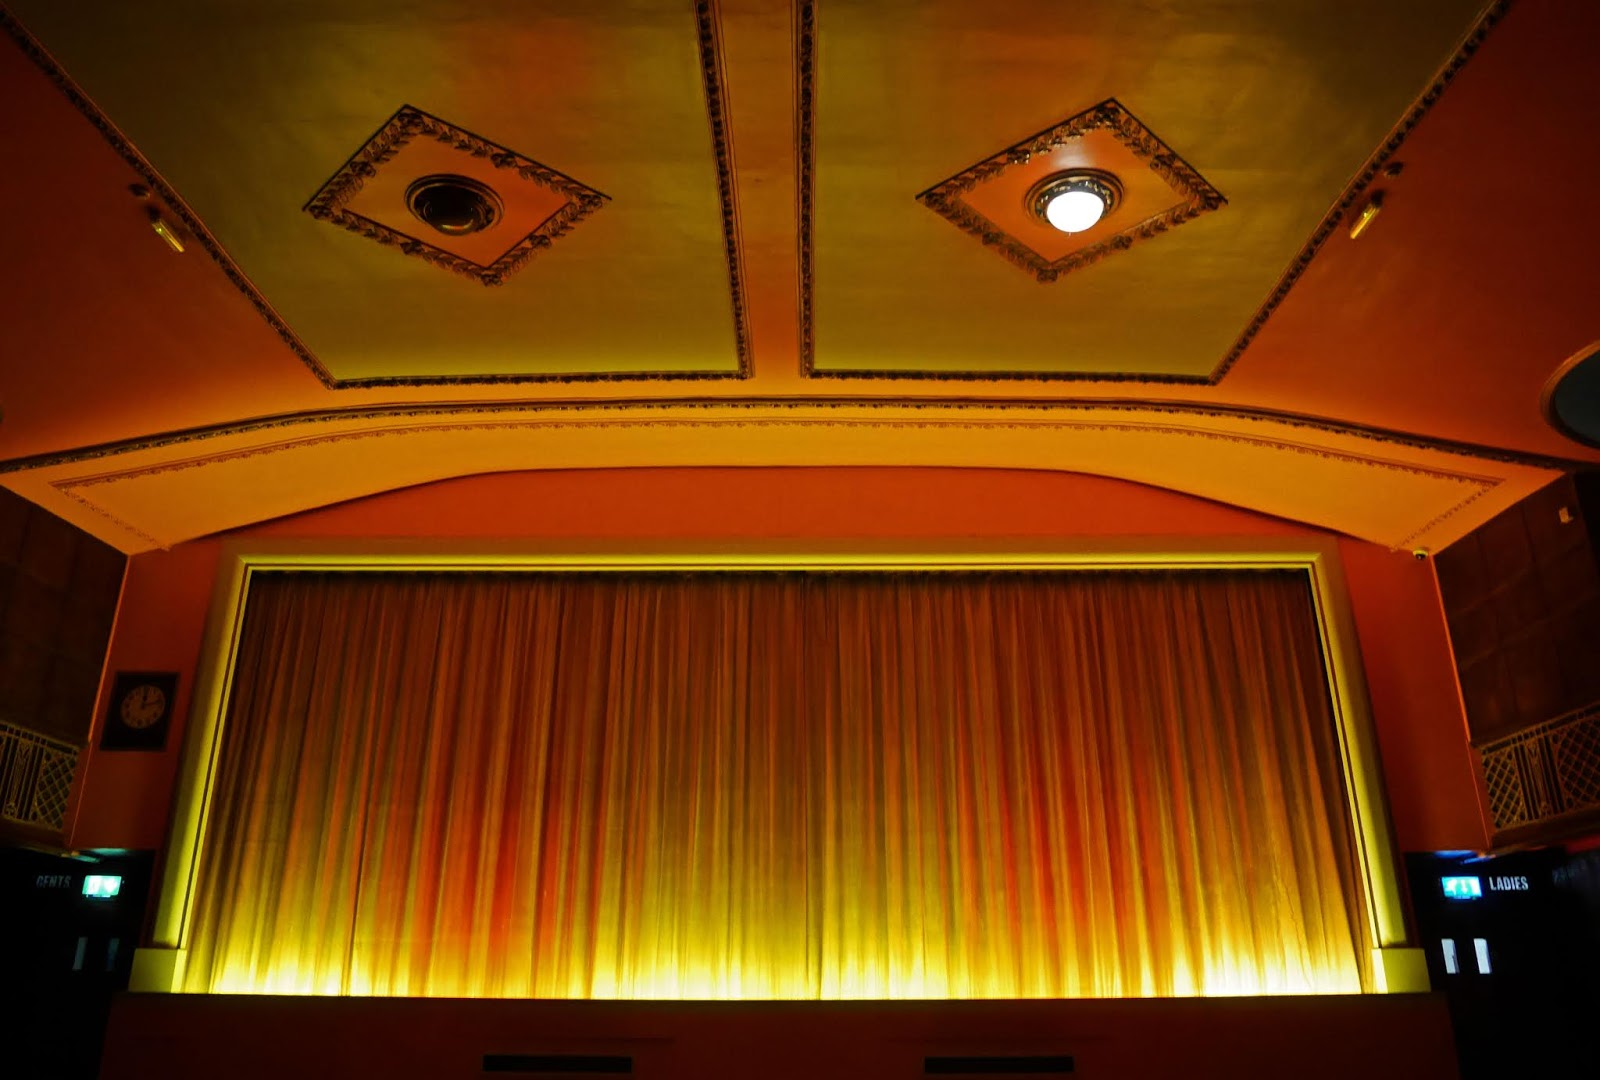 The Dome Cinema's massive screen, Worthing